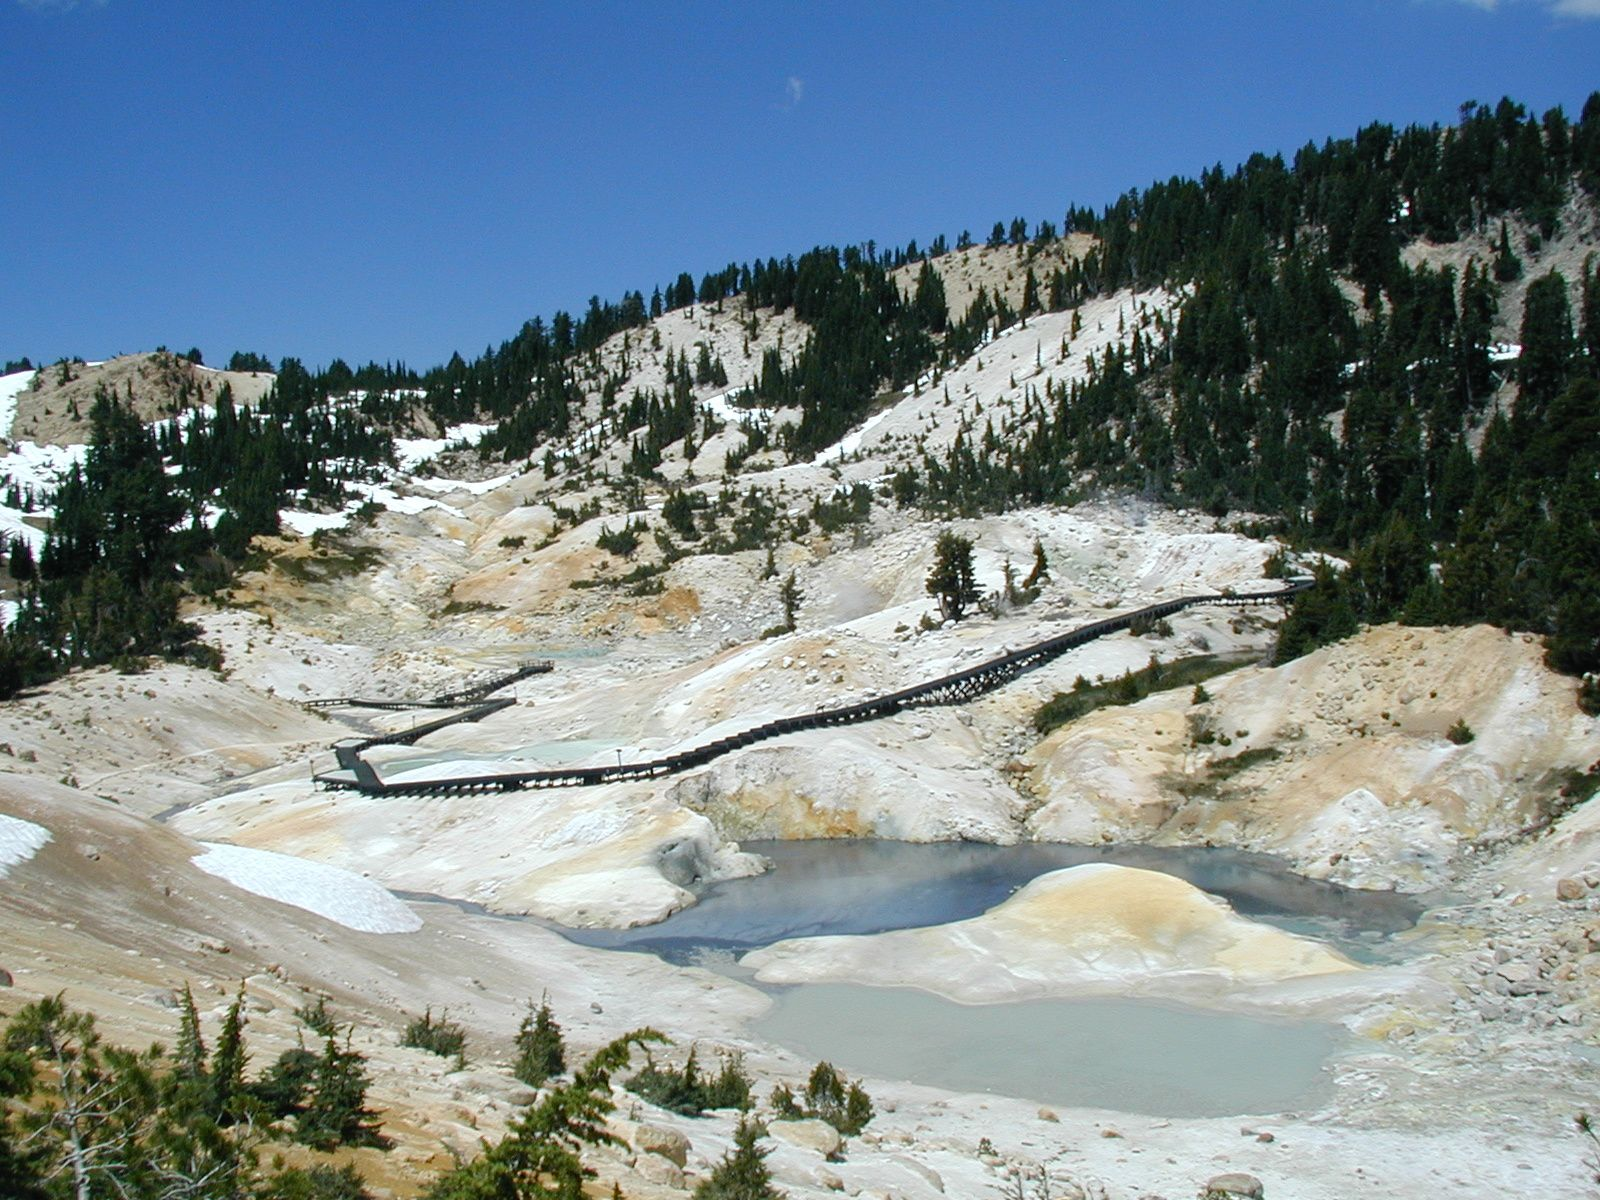 Lassen Volcanic Center - Bumpass Hell hydrothermal area, vue de l'eastern approach trail - photo NPS